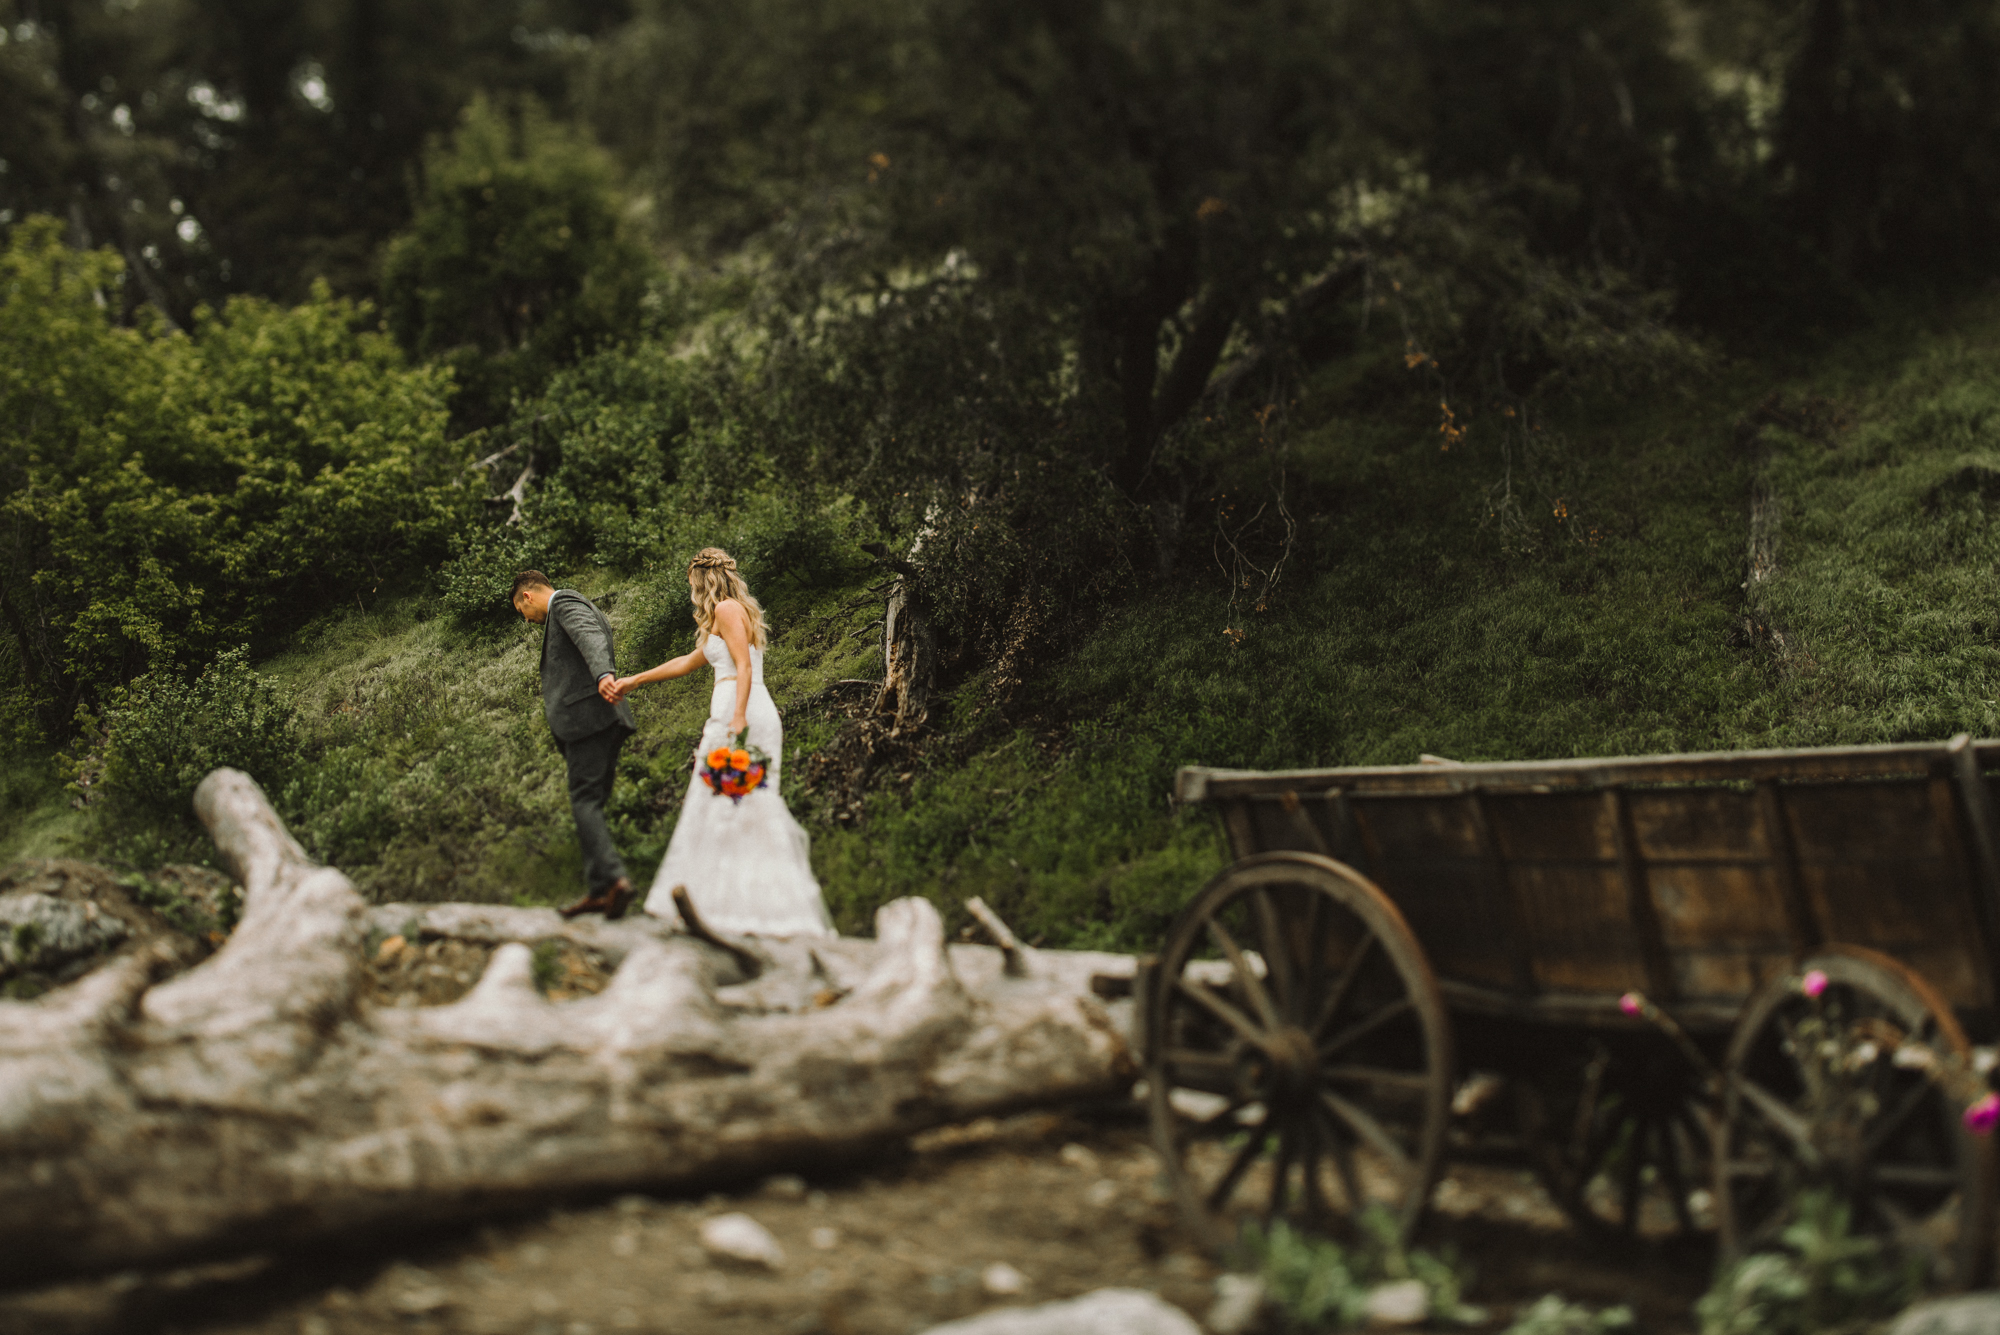 Isaiah & Taylor Photography - Los Angeles - Destination Wedding Photographers - Oak Glen Wilshire Ranch Foggy Forest Wedding-46.jpg